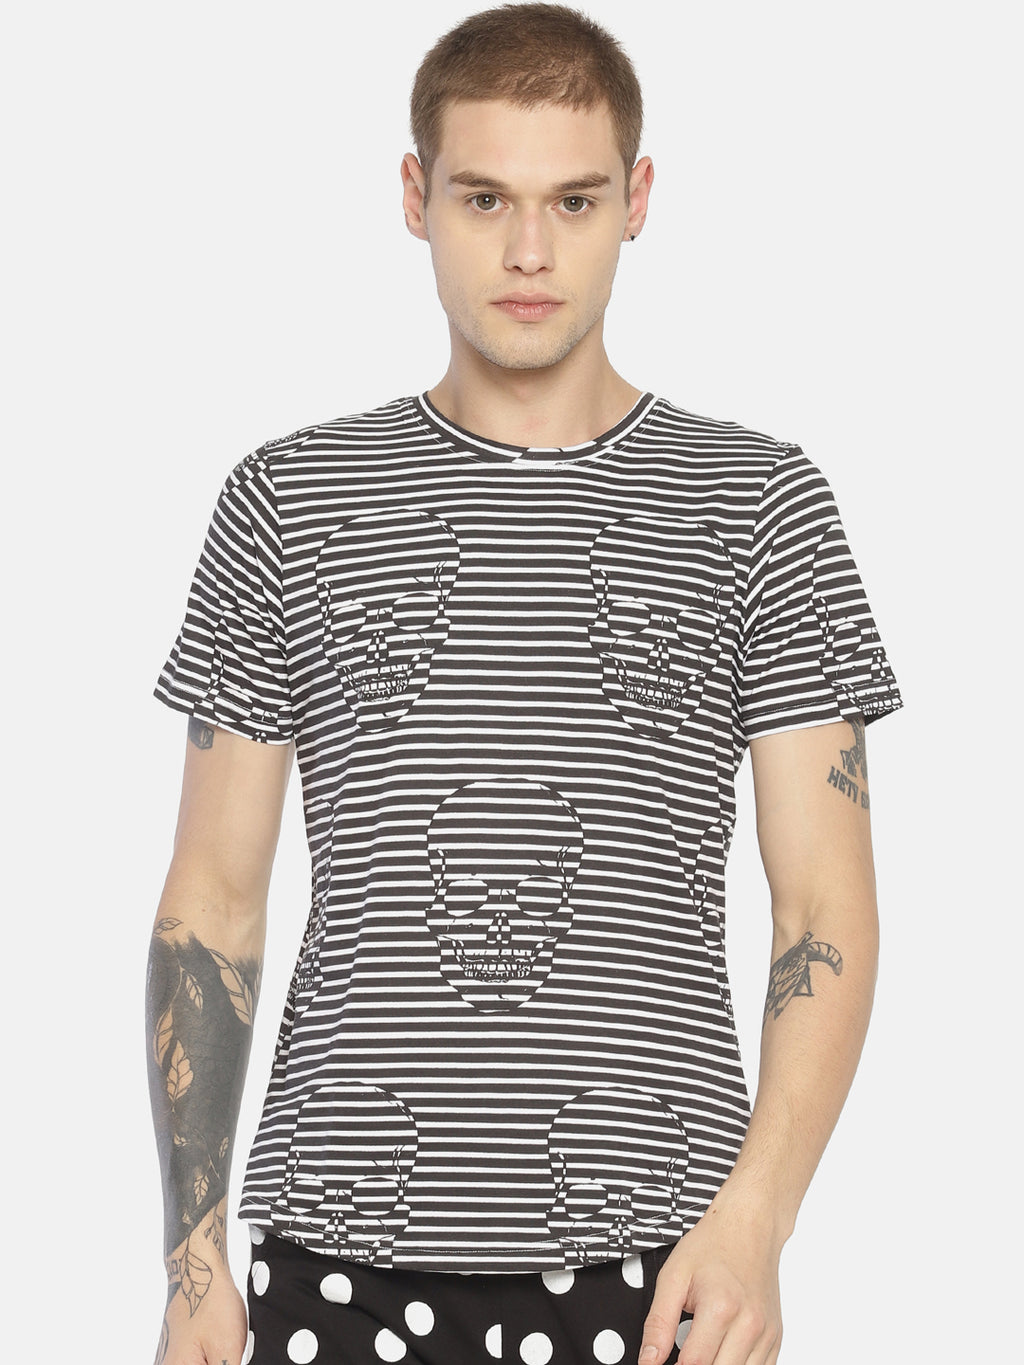 Monochrome striped t-shirt